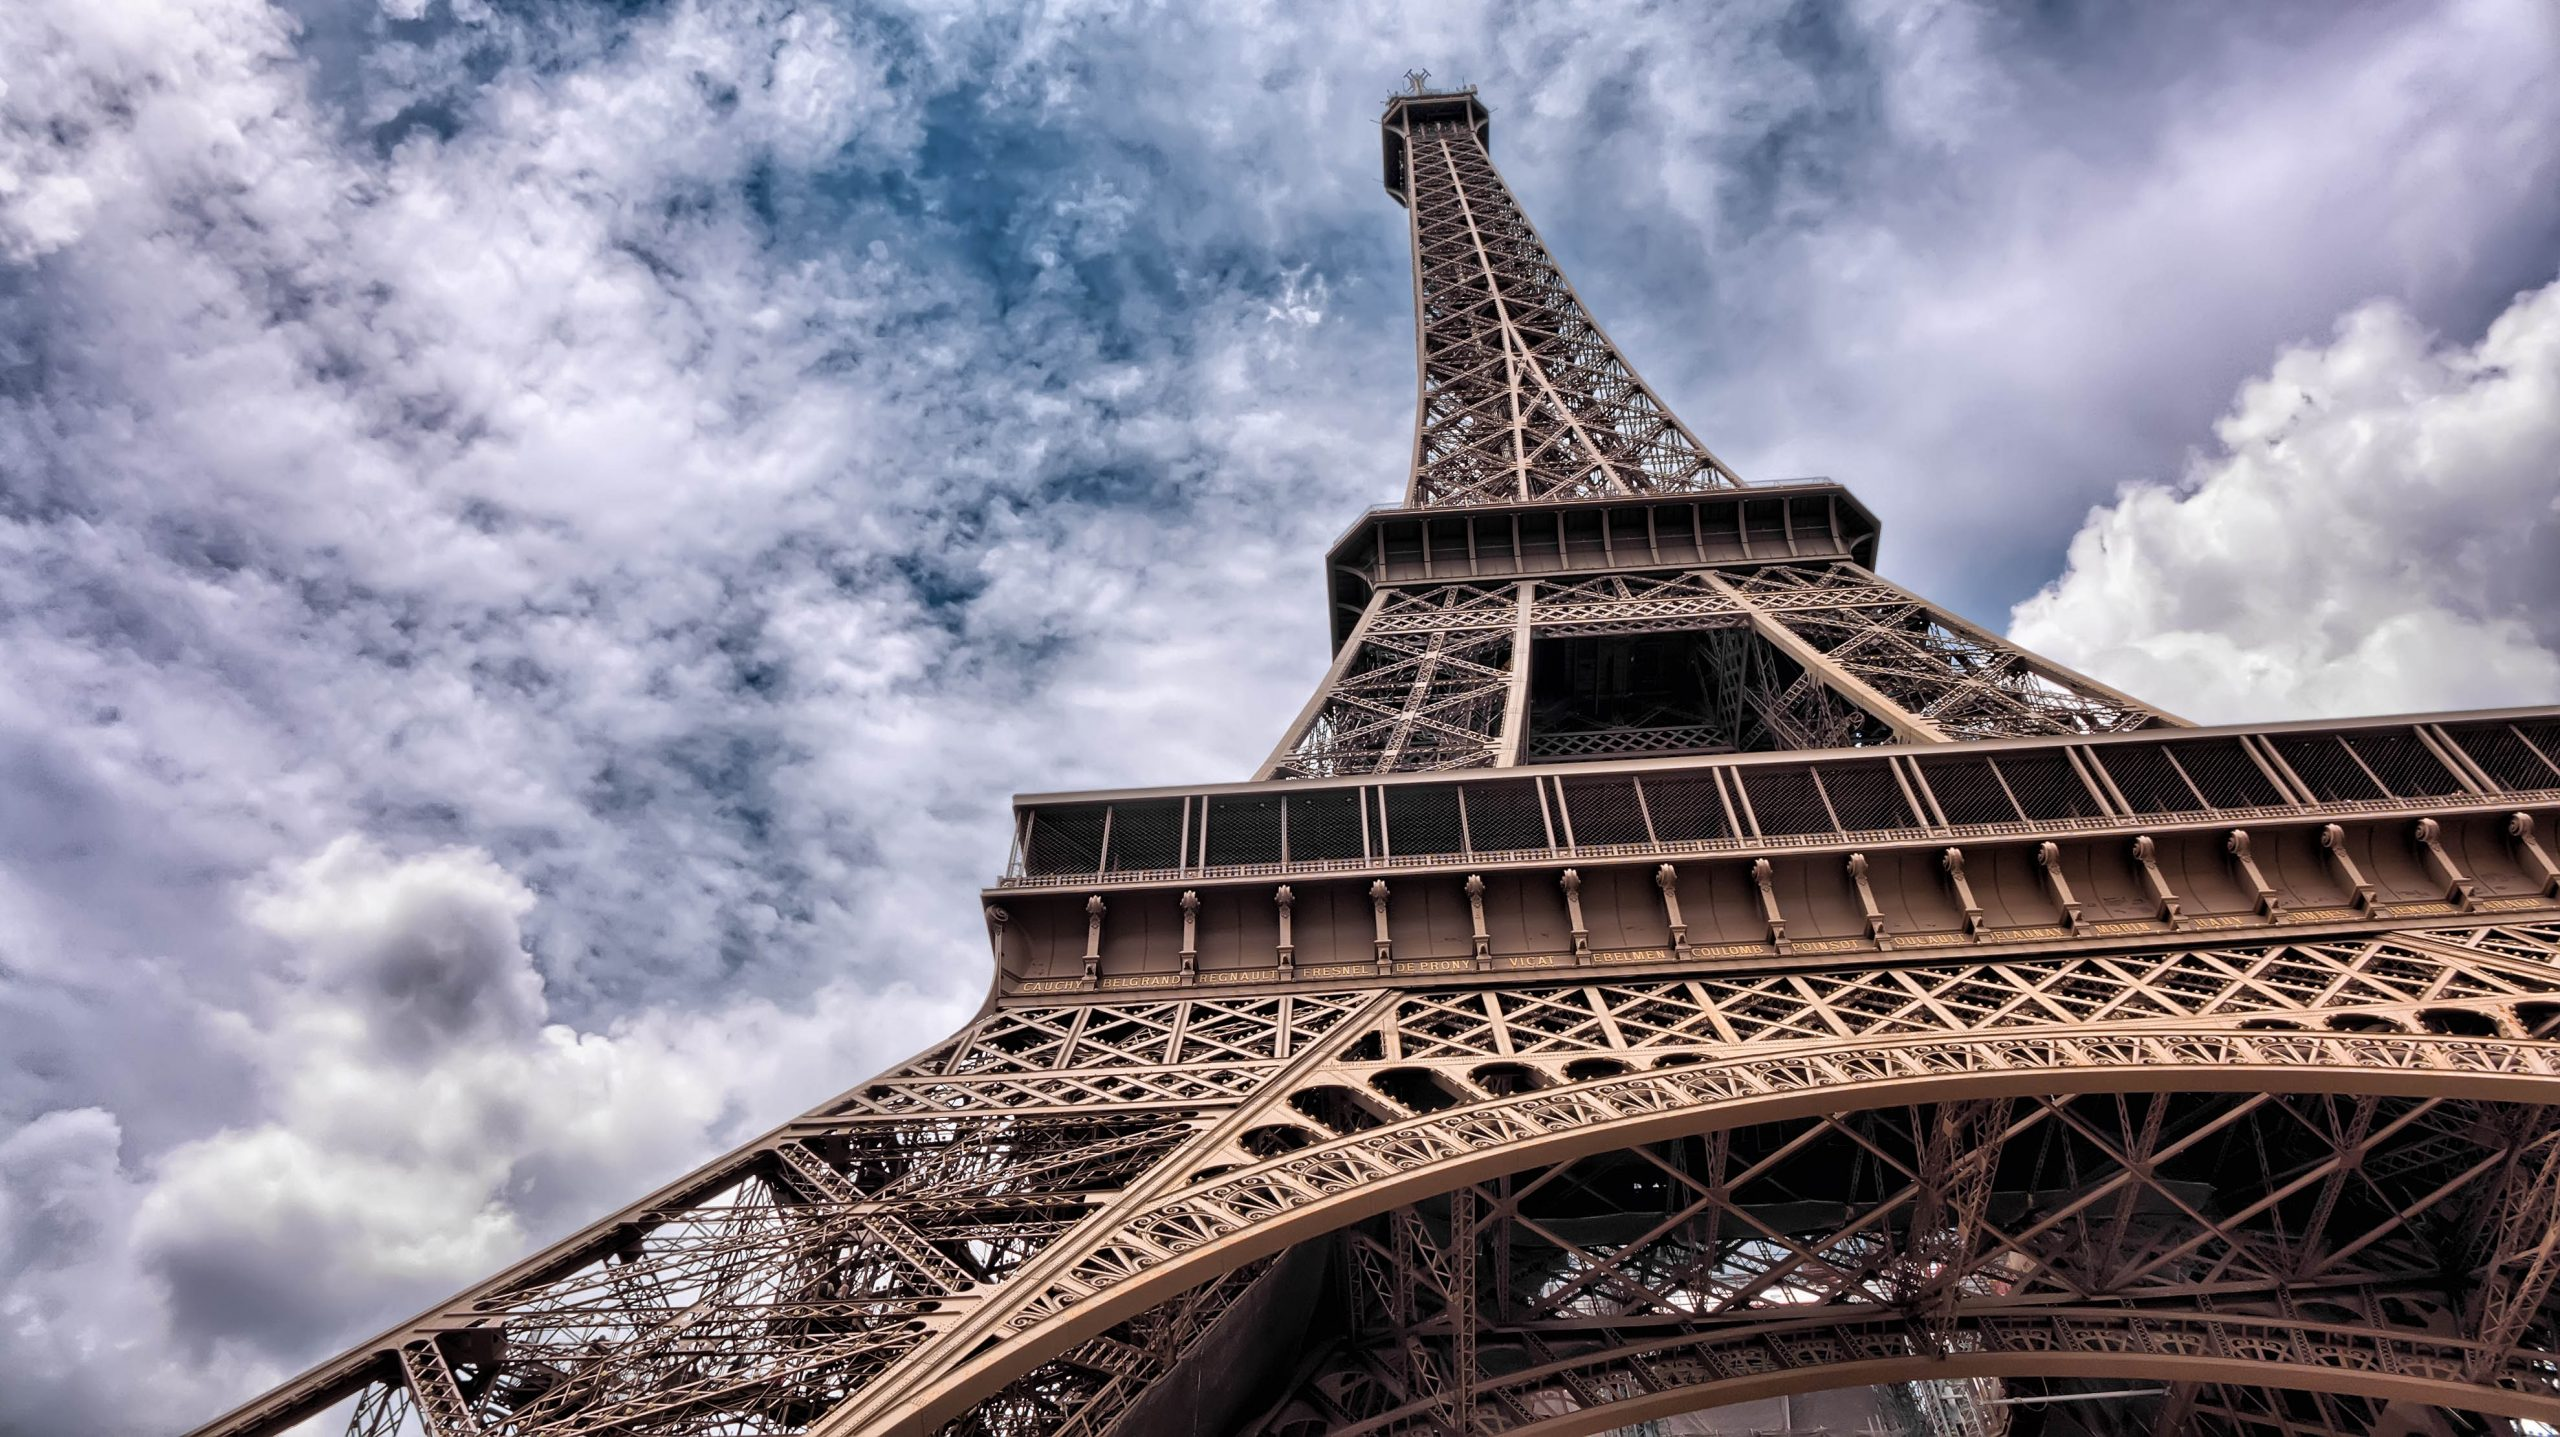 The Eiffel Tower Marketing Research Paper